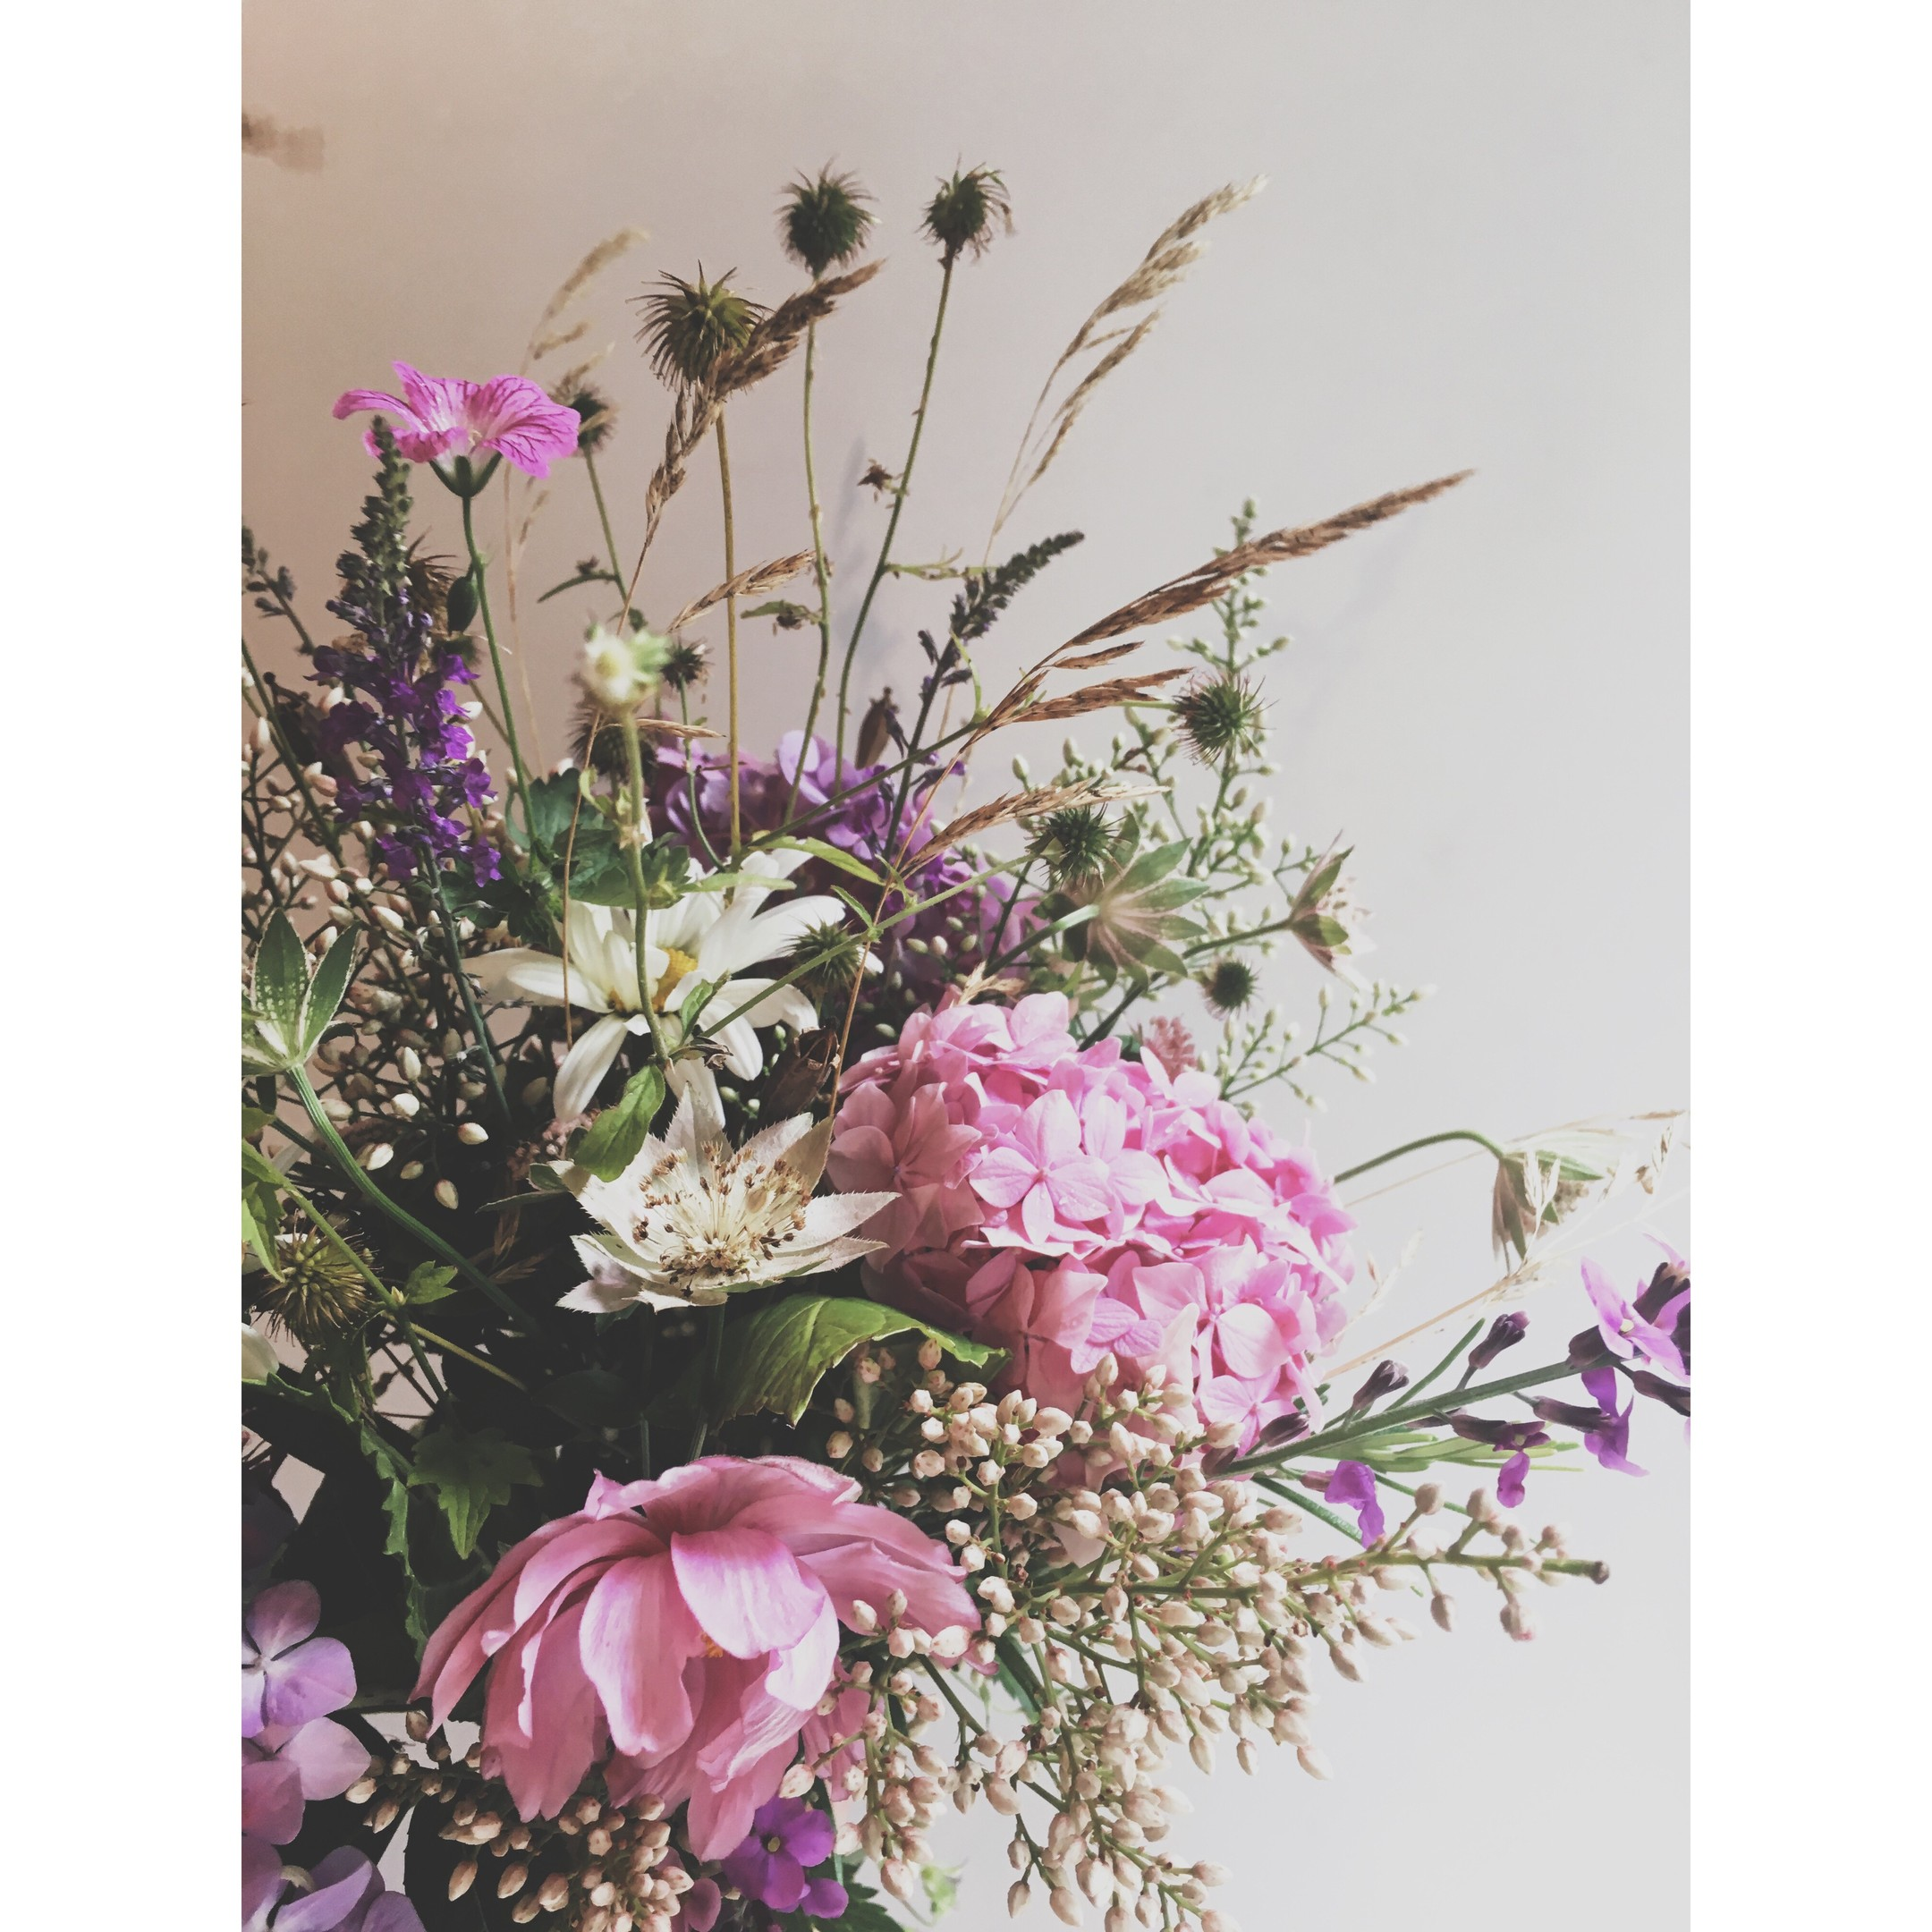 5 insider tips on flower arranging my weekly flowers with big blousy round heads such as hydrangeas peonies or roses are great contrasted with some softer smaller flowers like astrantia or scabious izmirmasajfo